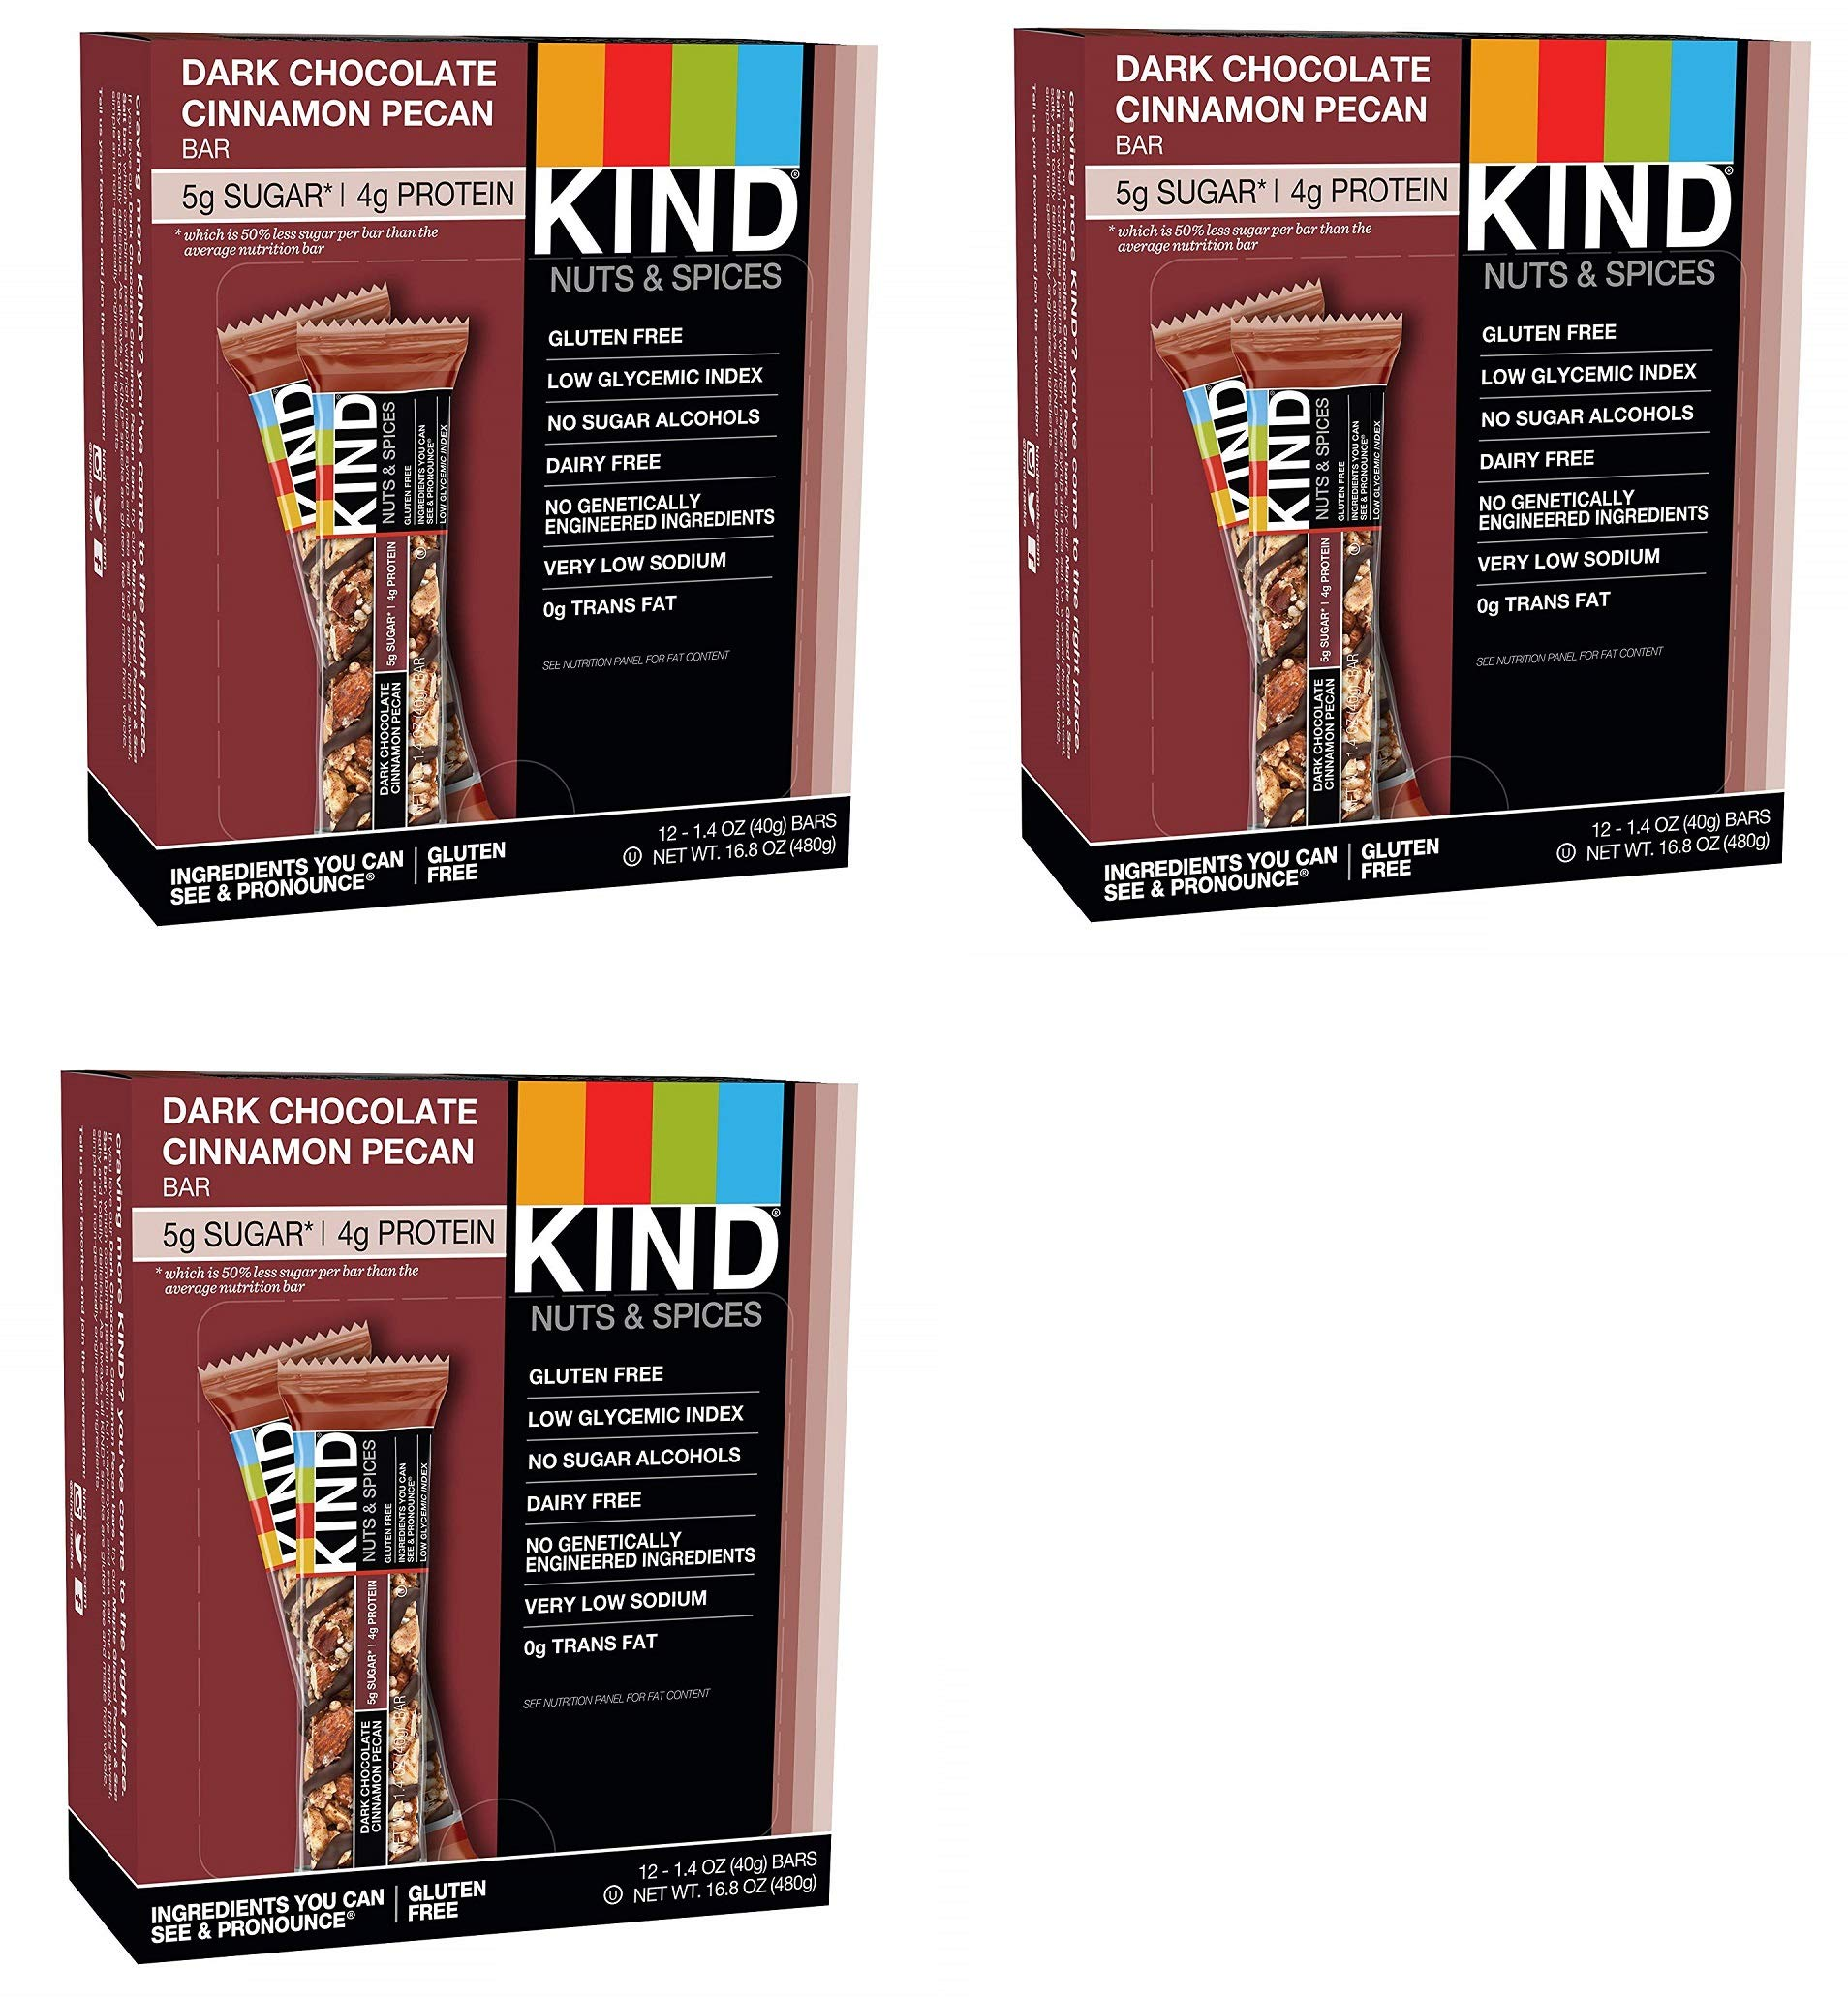 KIND Bars, Dark Chocolate Cinnamon Pecan, Gluten Free, Low Sugar, 1.4oz, 36 Bars